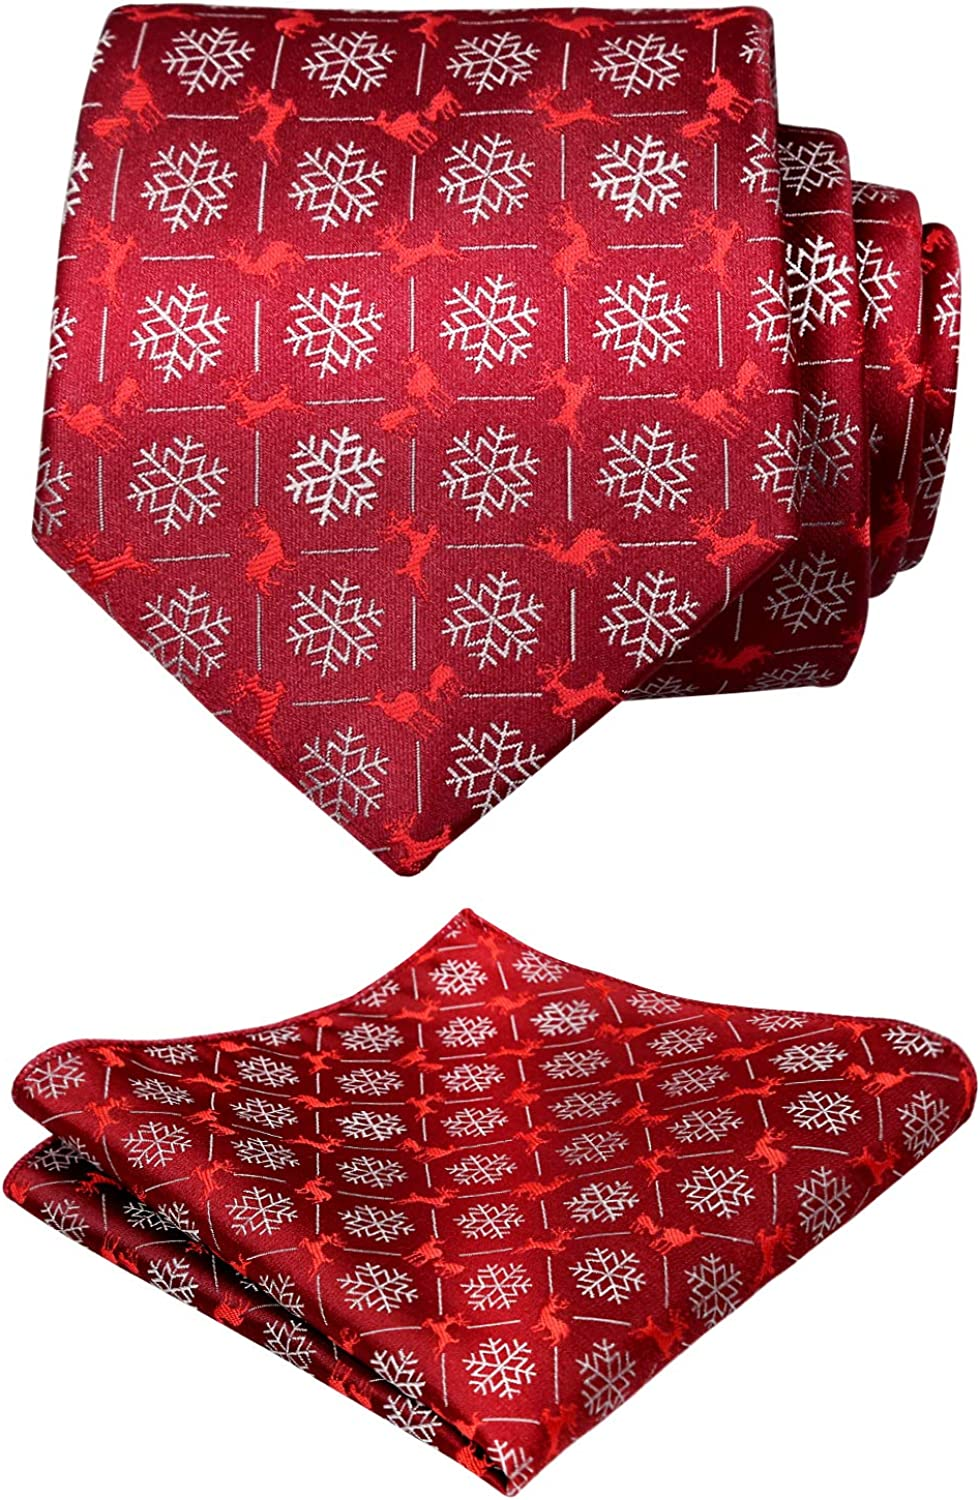 Alizeal Mens Regular Tie and Pocket Square Set for Christmas